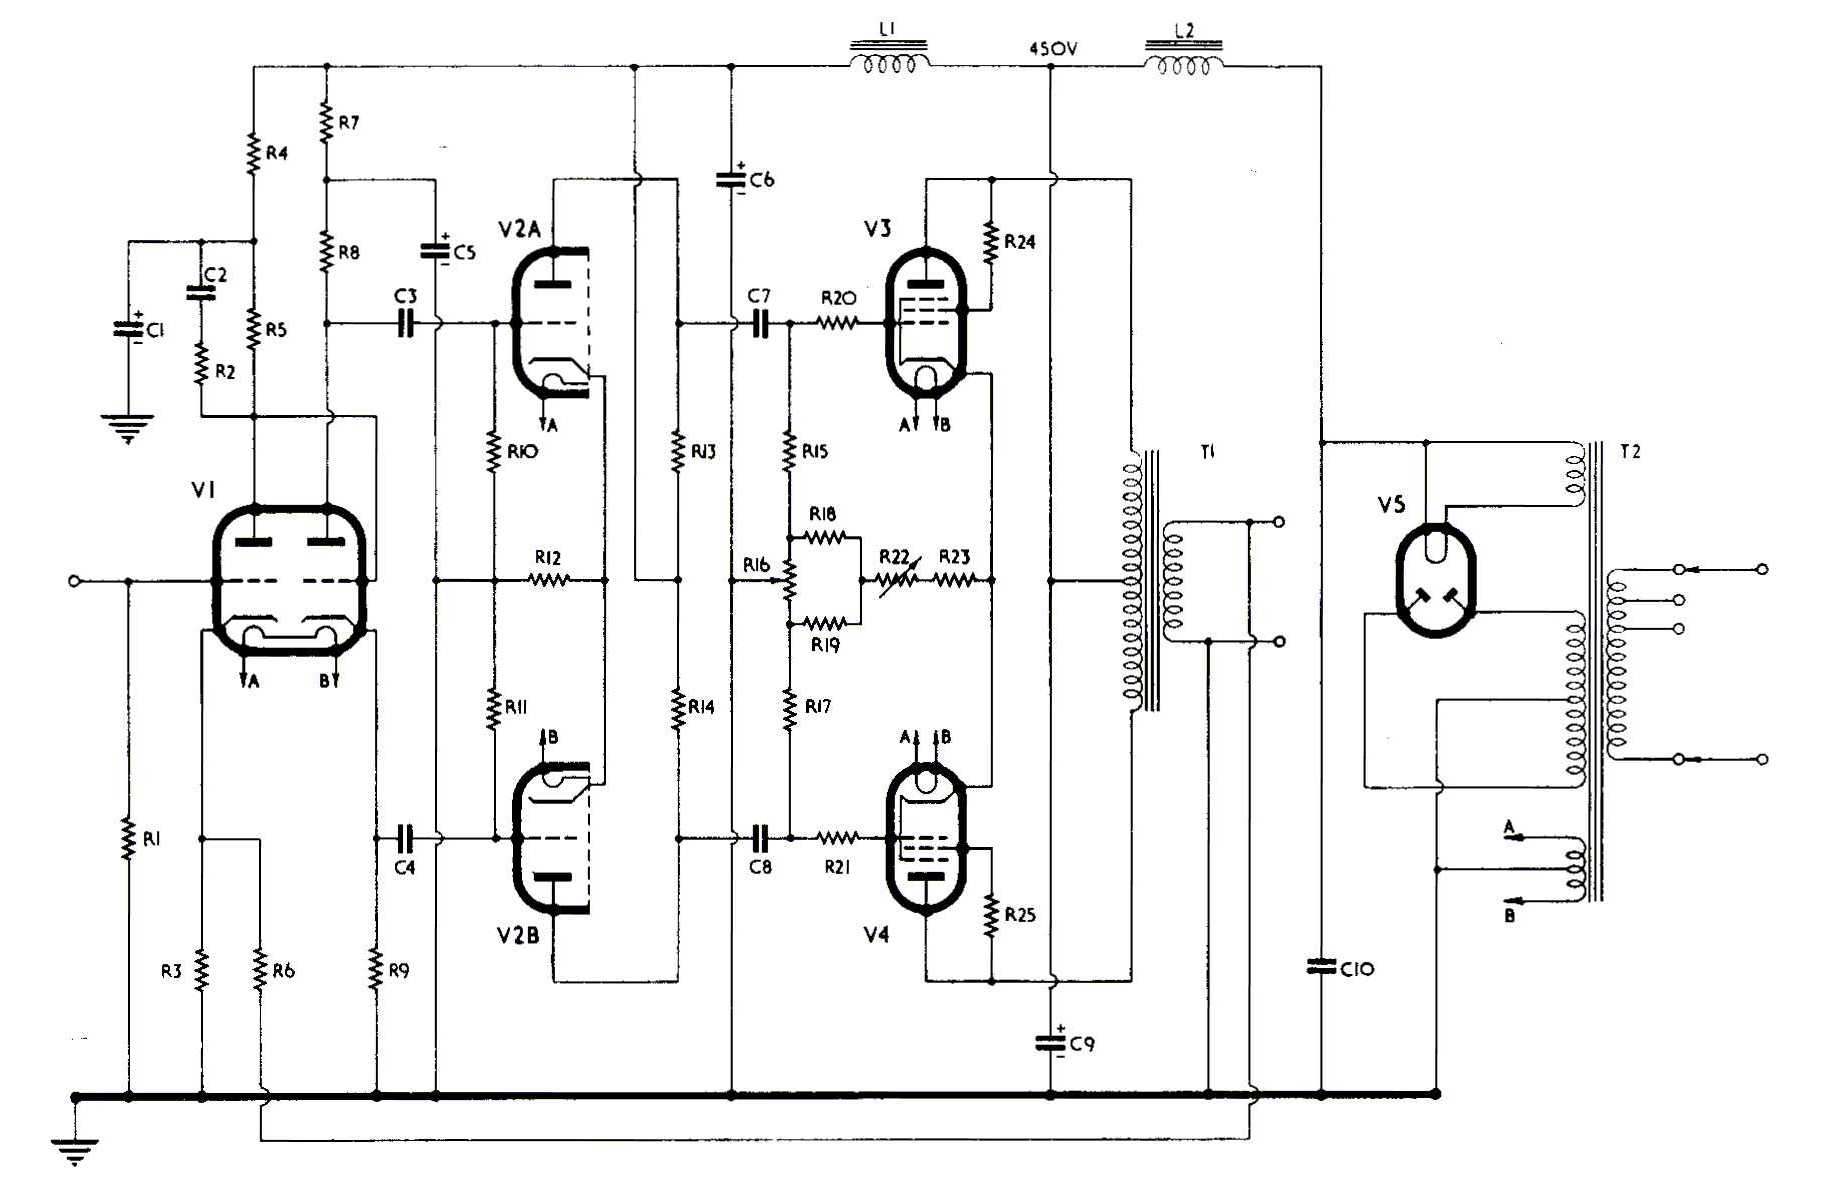 Tubes In Addition Push Pull Tube Schematic On 6sn7 Amplifier Parts List For The Above